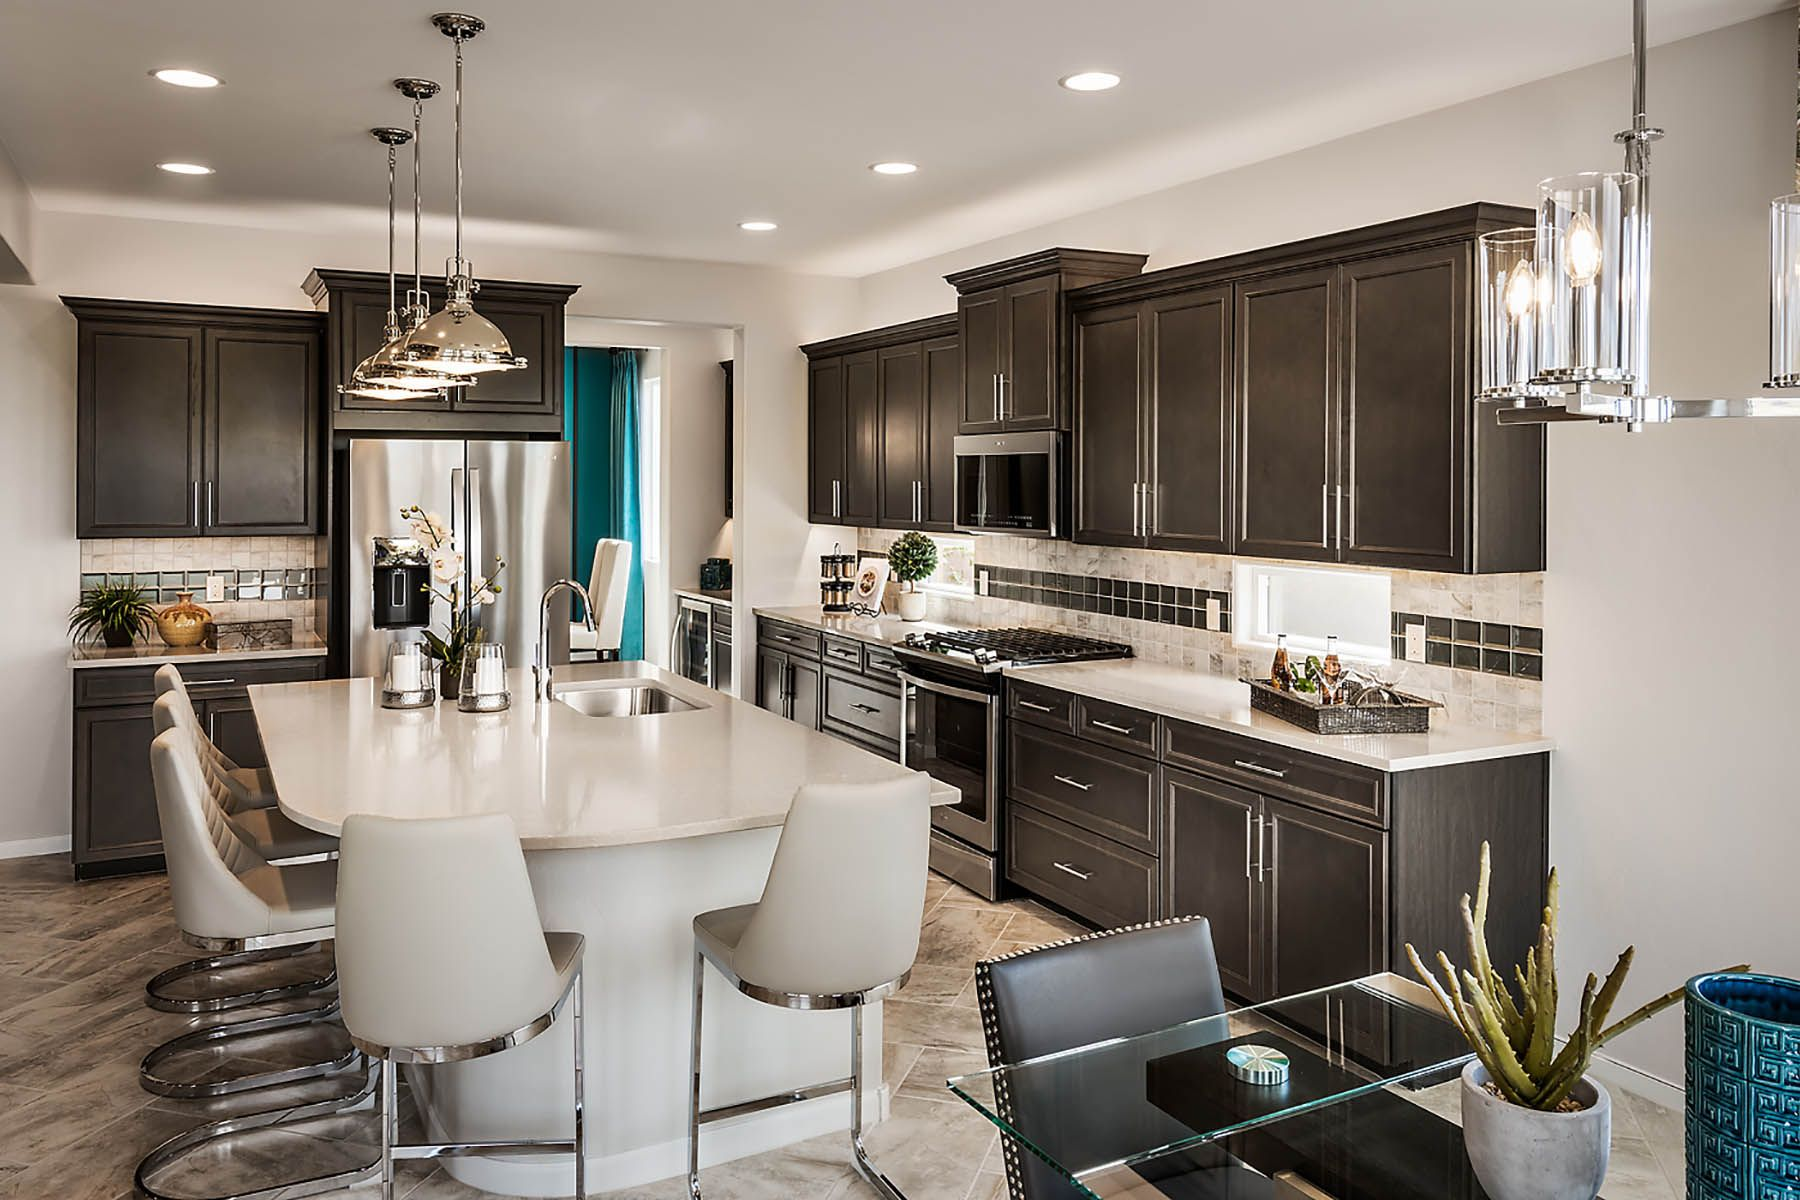 Kitchen featured in the Panorama By Mattamy Homes in Tucson, AZ